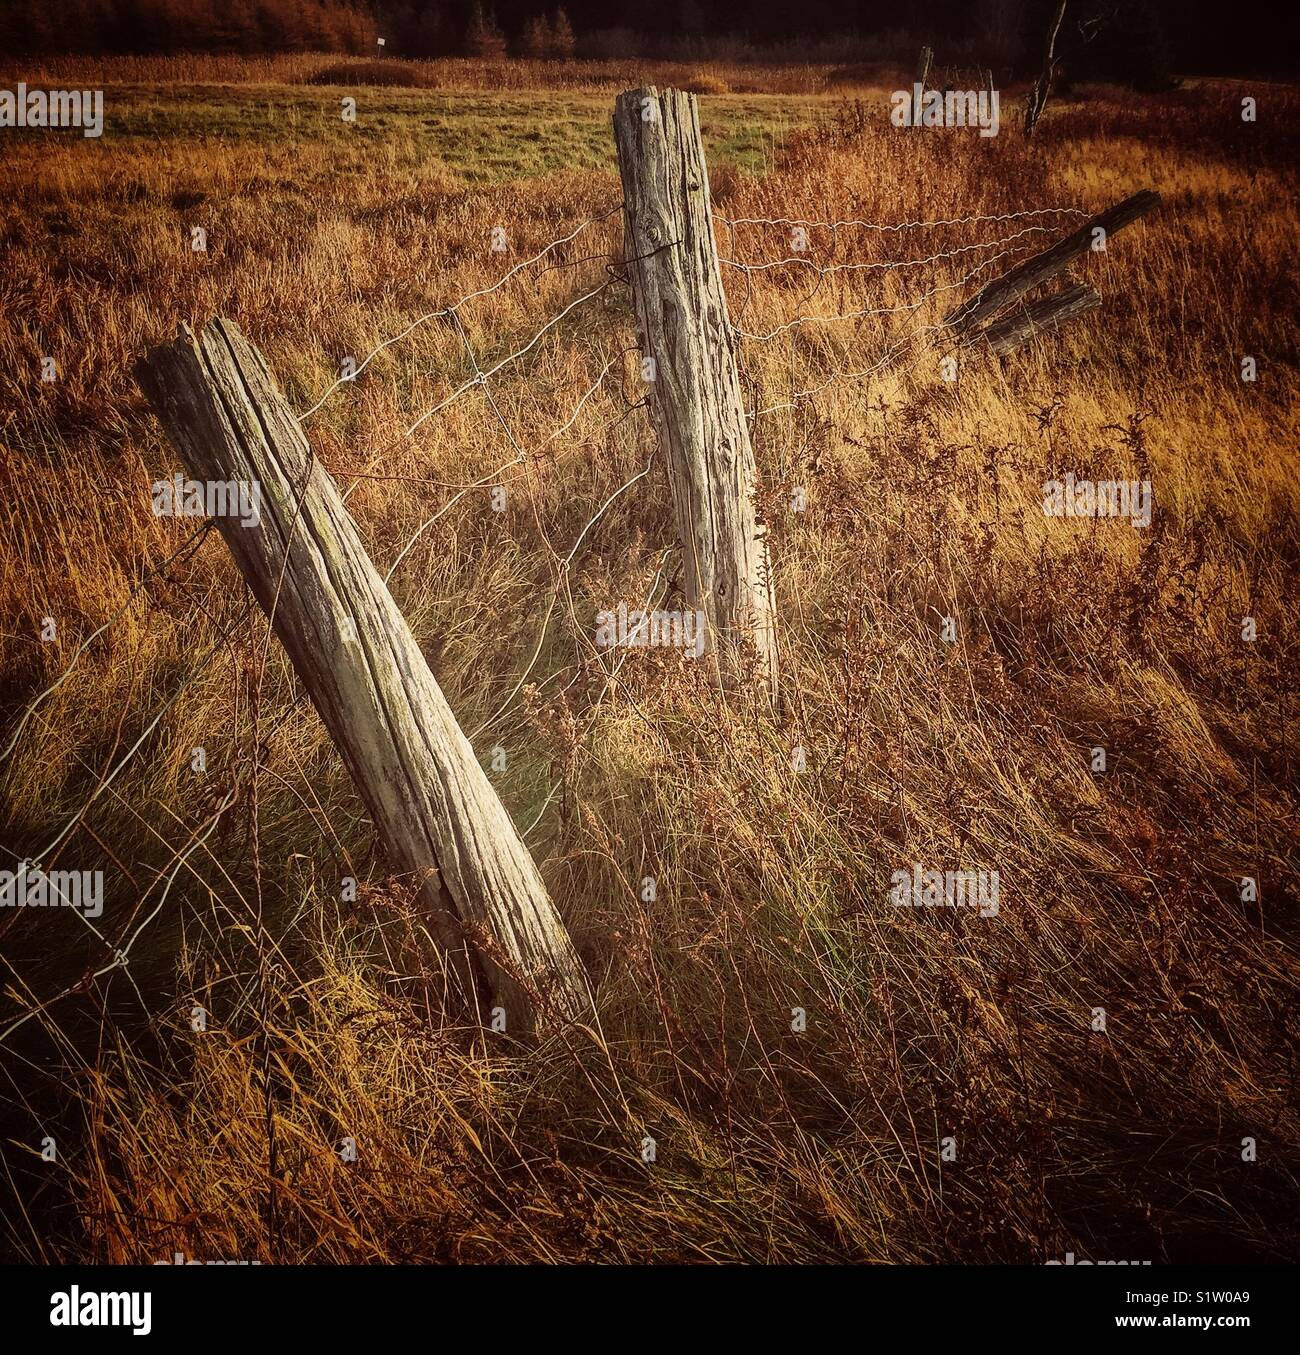 Old barb wire farm fence. - Stock Image